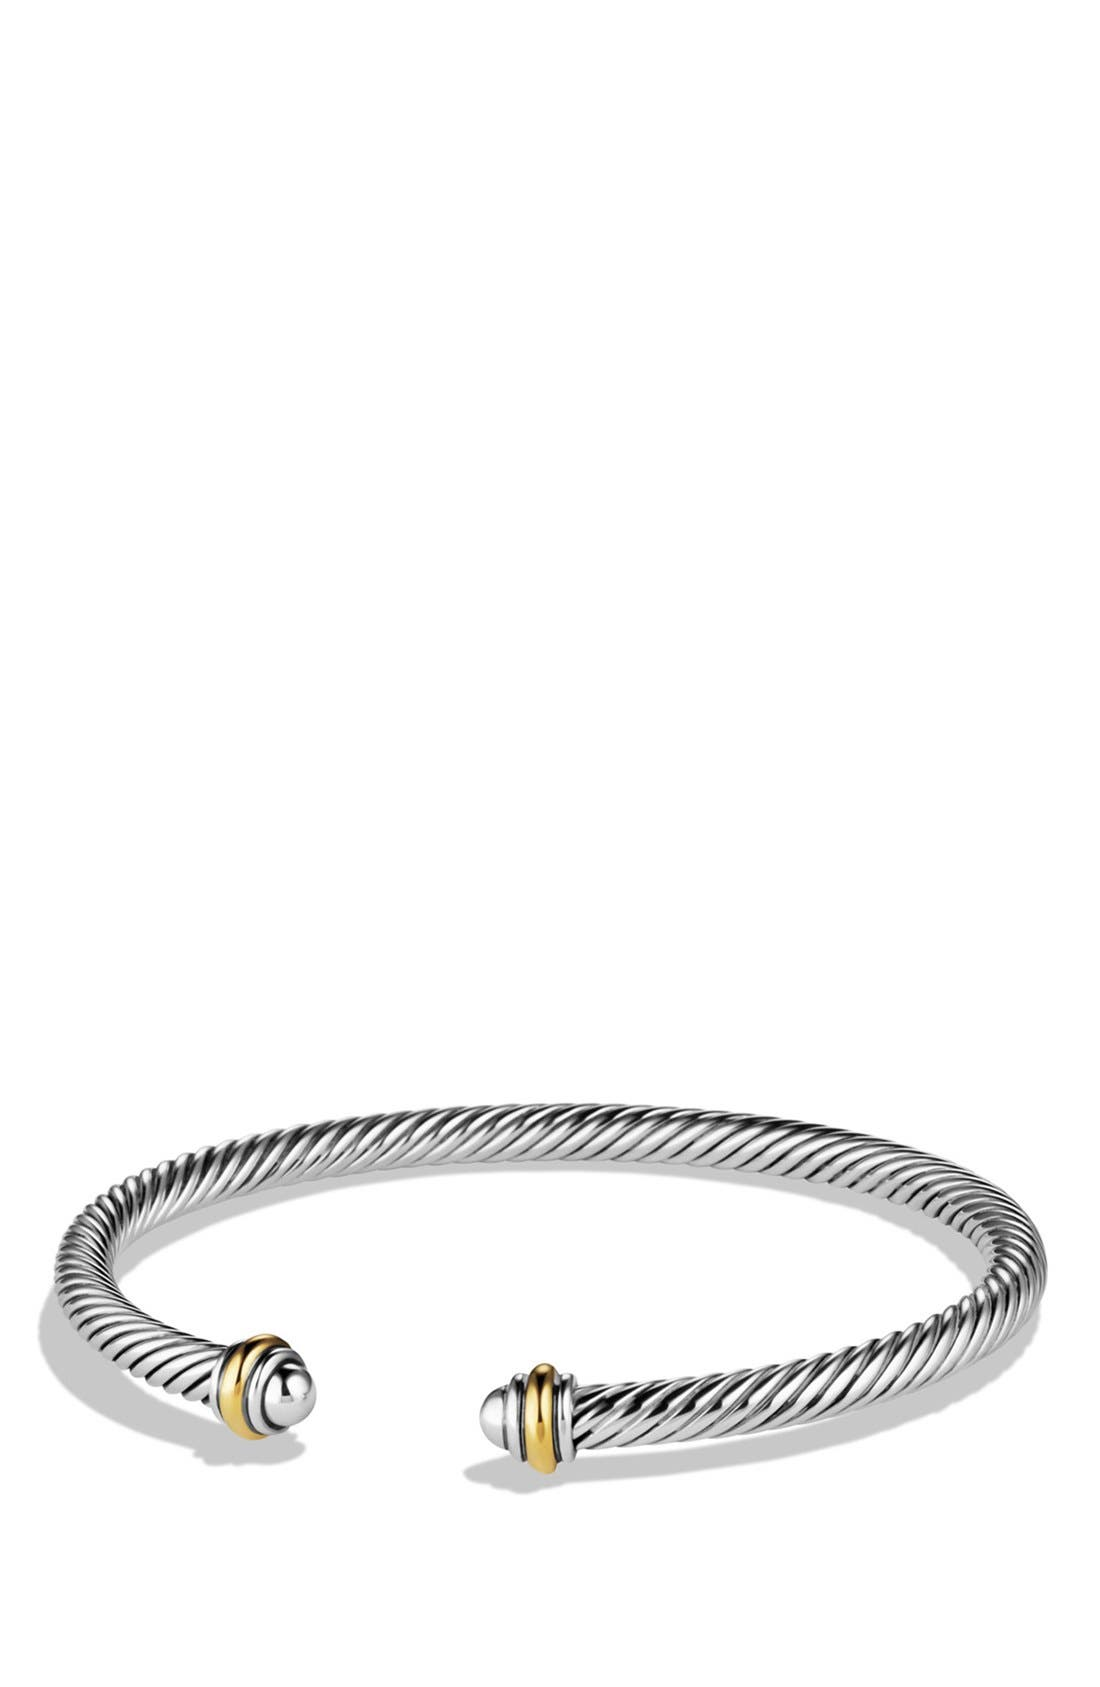 Main Image - David Yurman 'Cable Classics' Bracelet with Gold